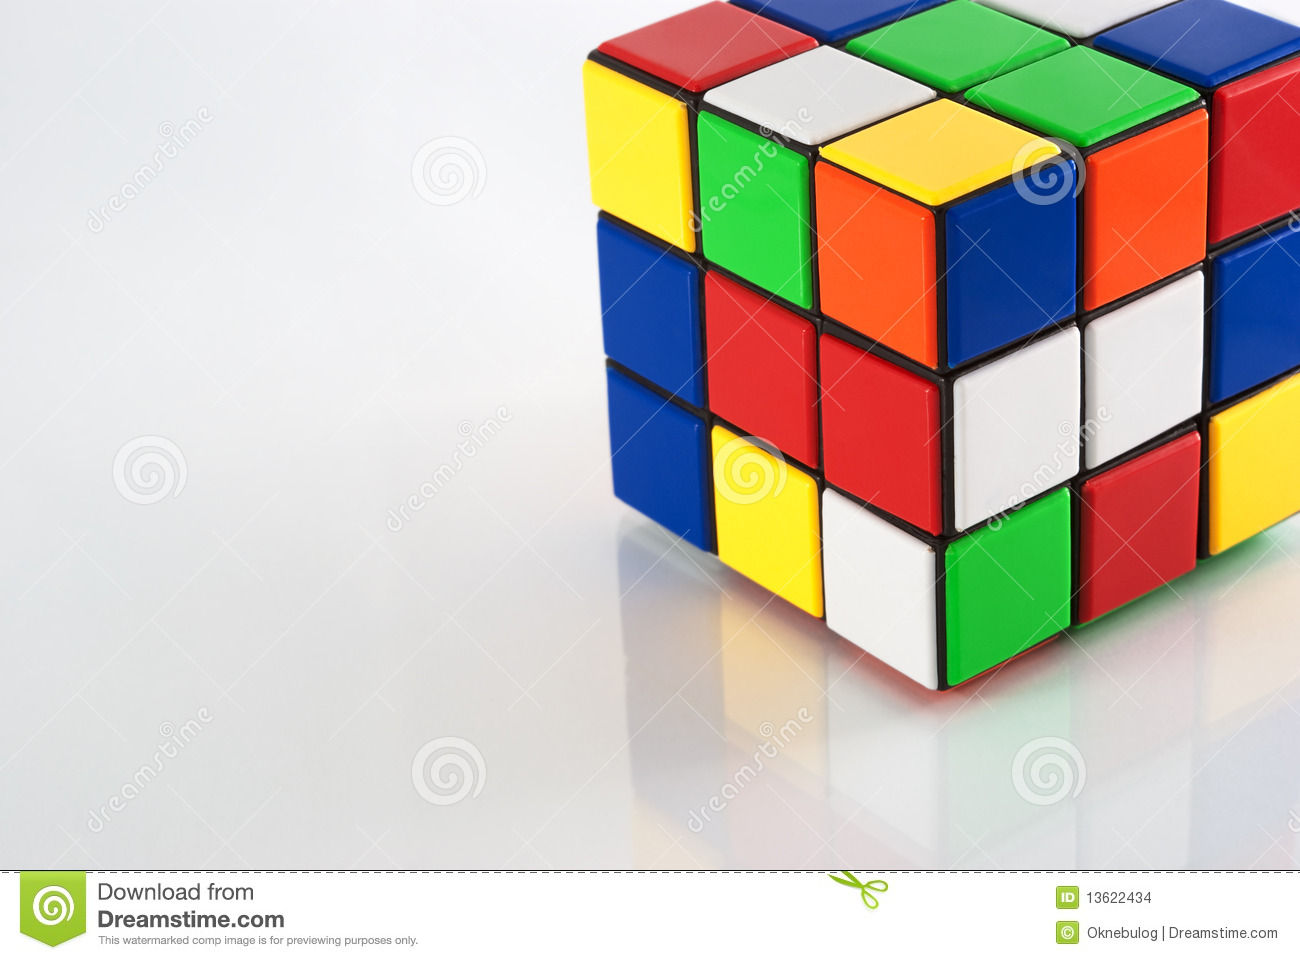 rubiks cube wallpaper 12801024 Images   Frompo 1300x960